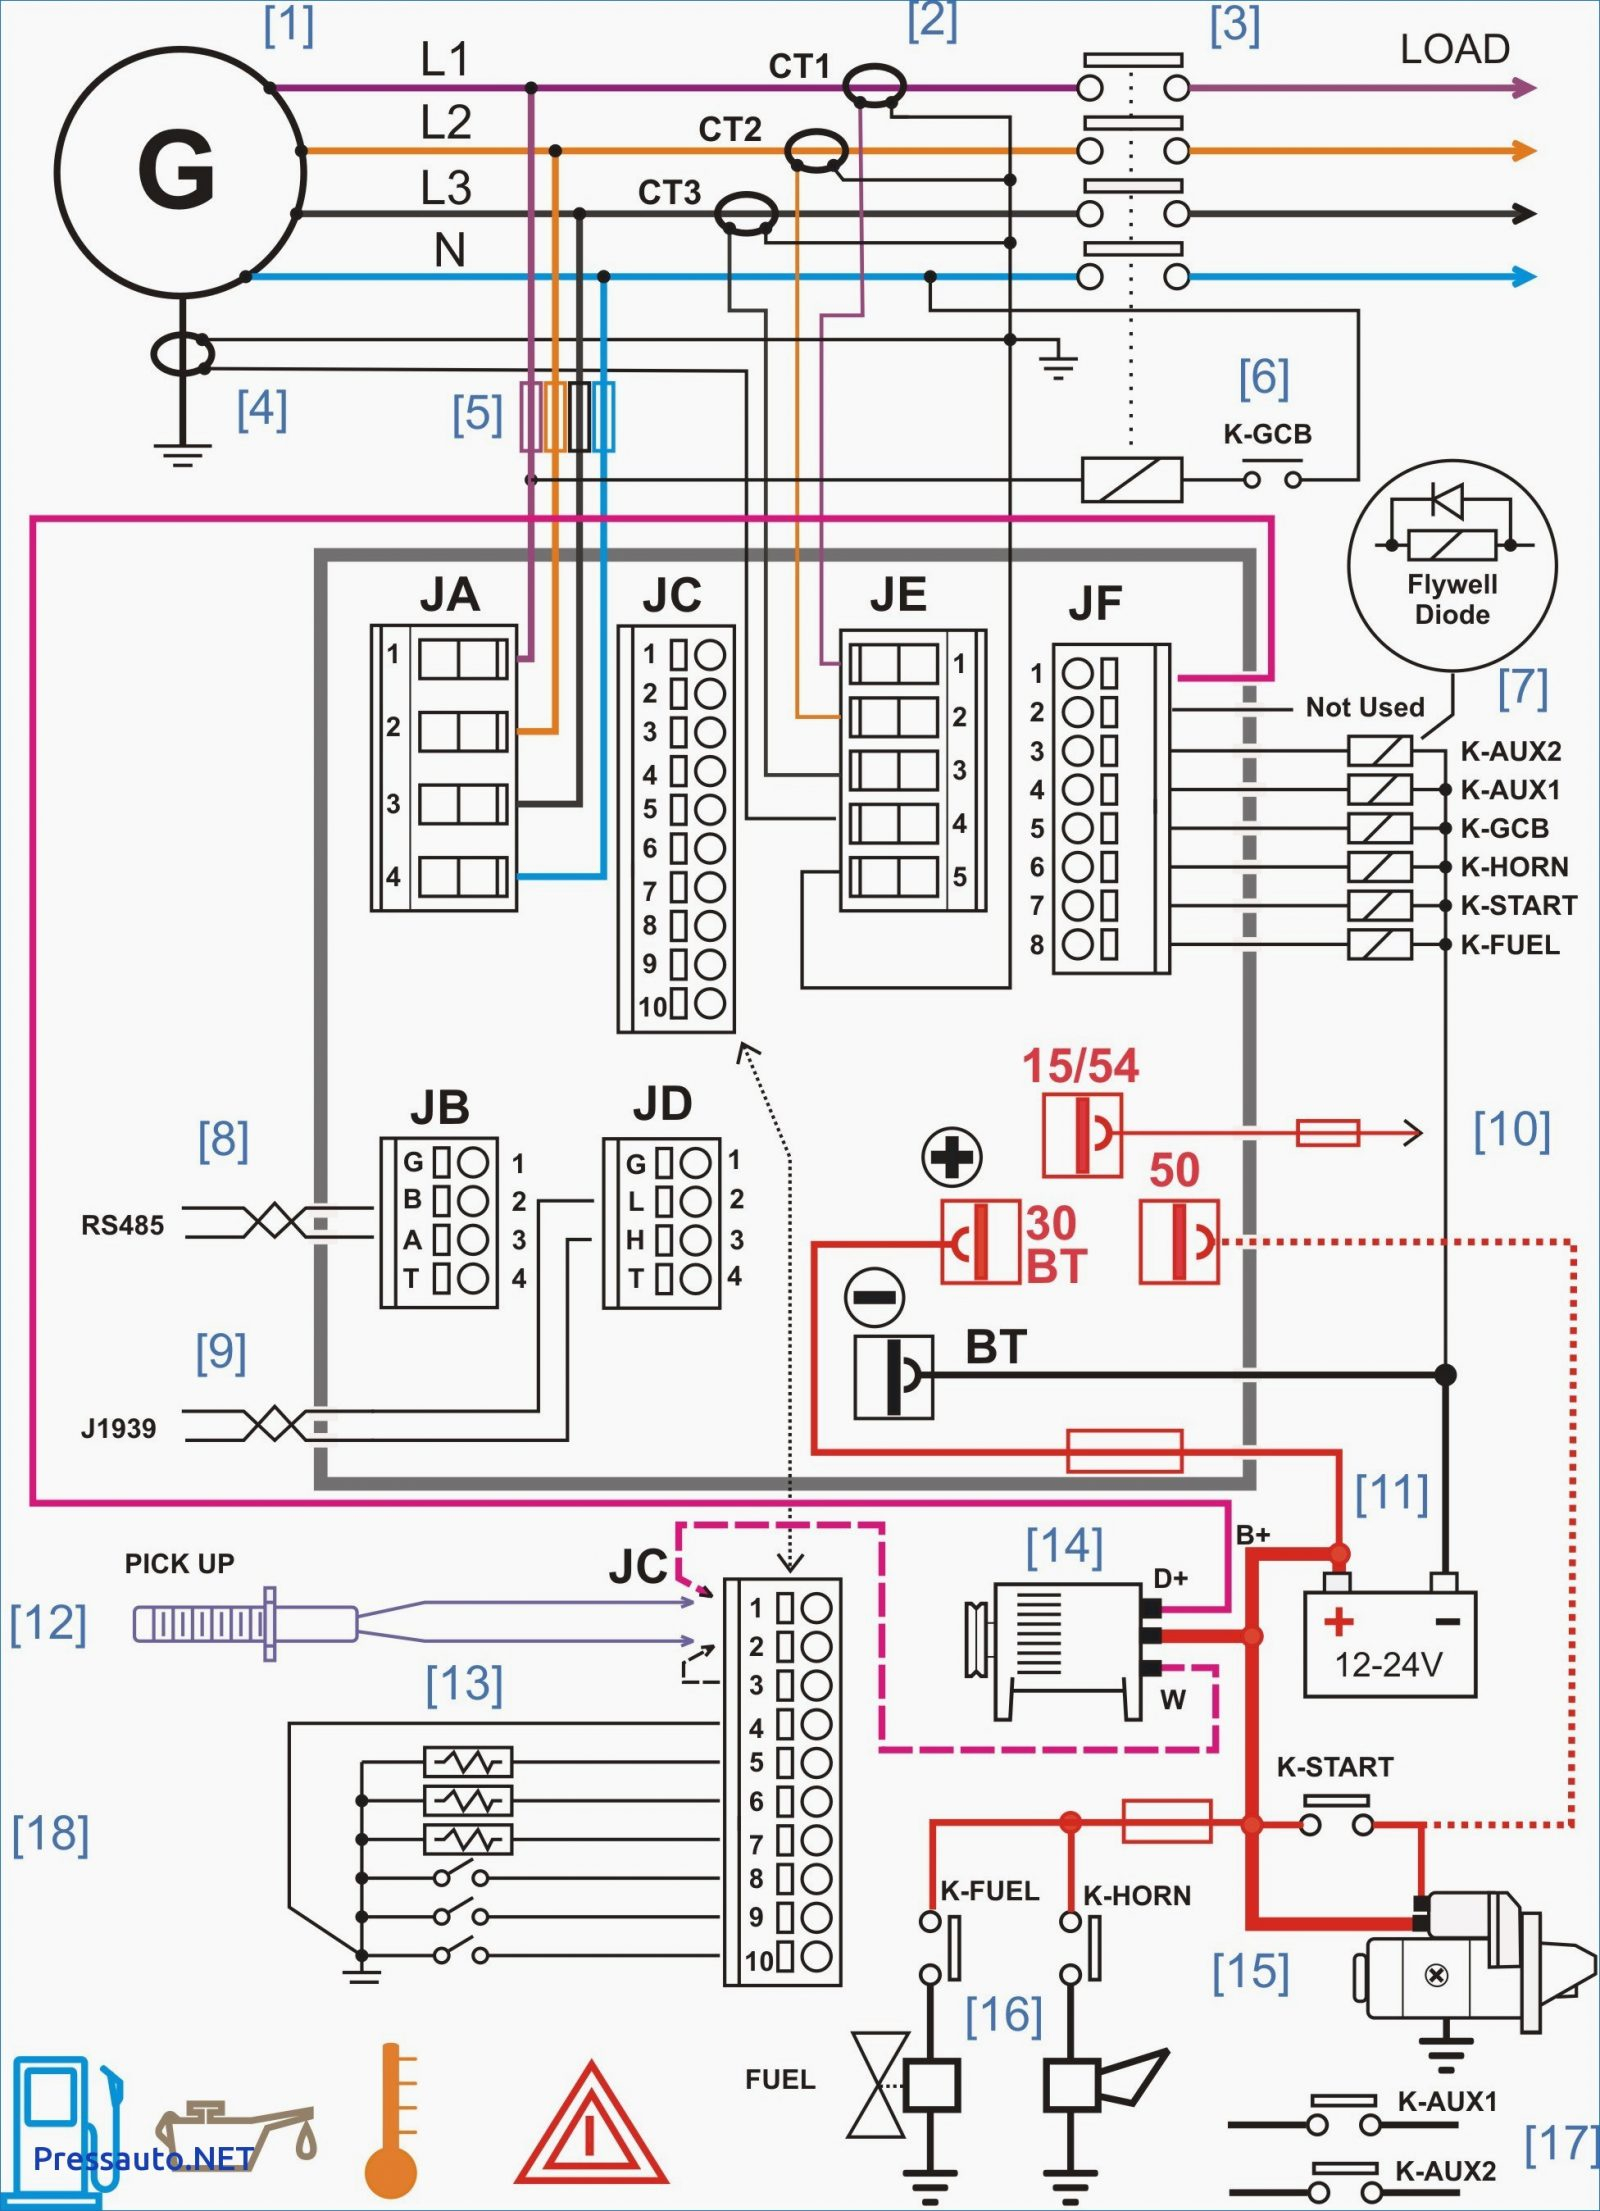 Asco 7000    Series    ats    Wiring       Diagram       Download         Wiring    Collection